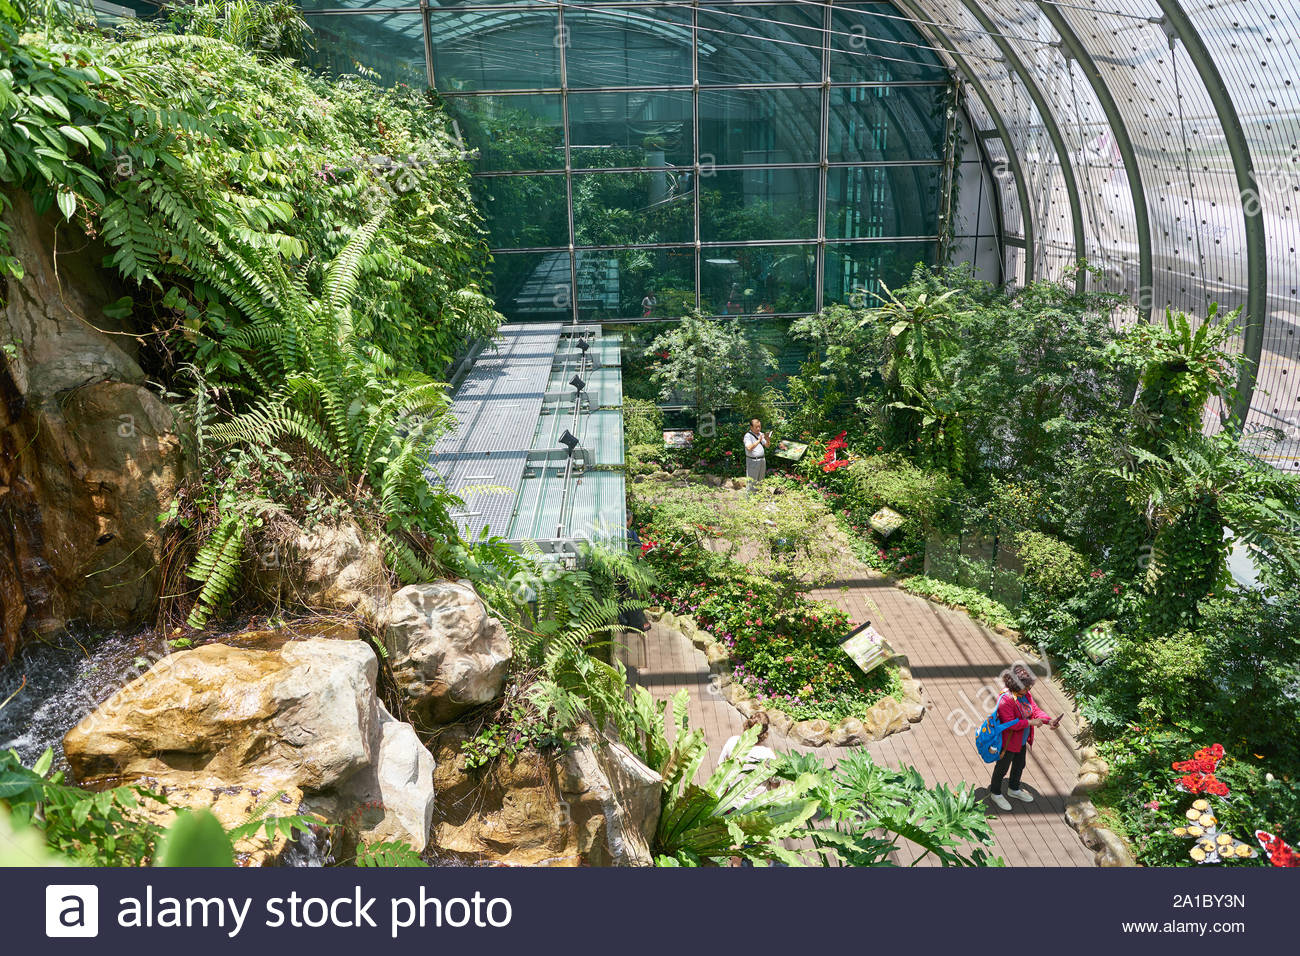 singapore circa april 2019 interior shot of butterfly garden in changi international airport 2A1BY3N